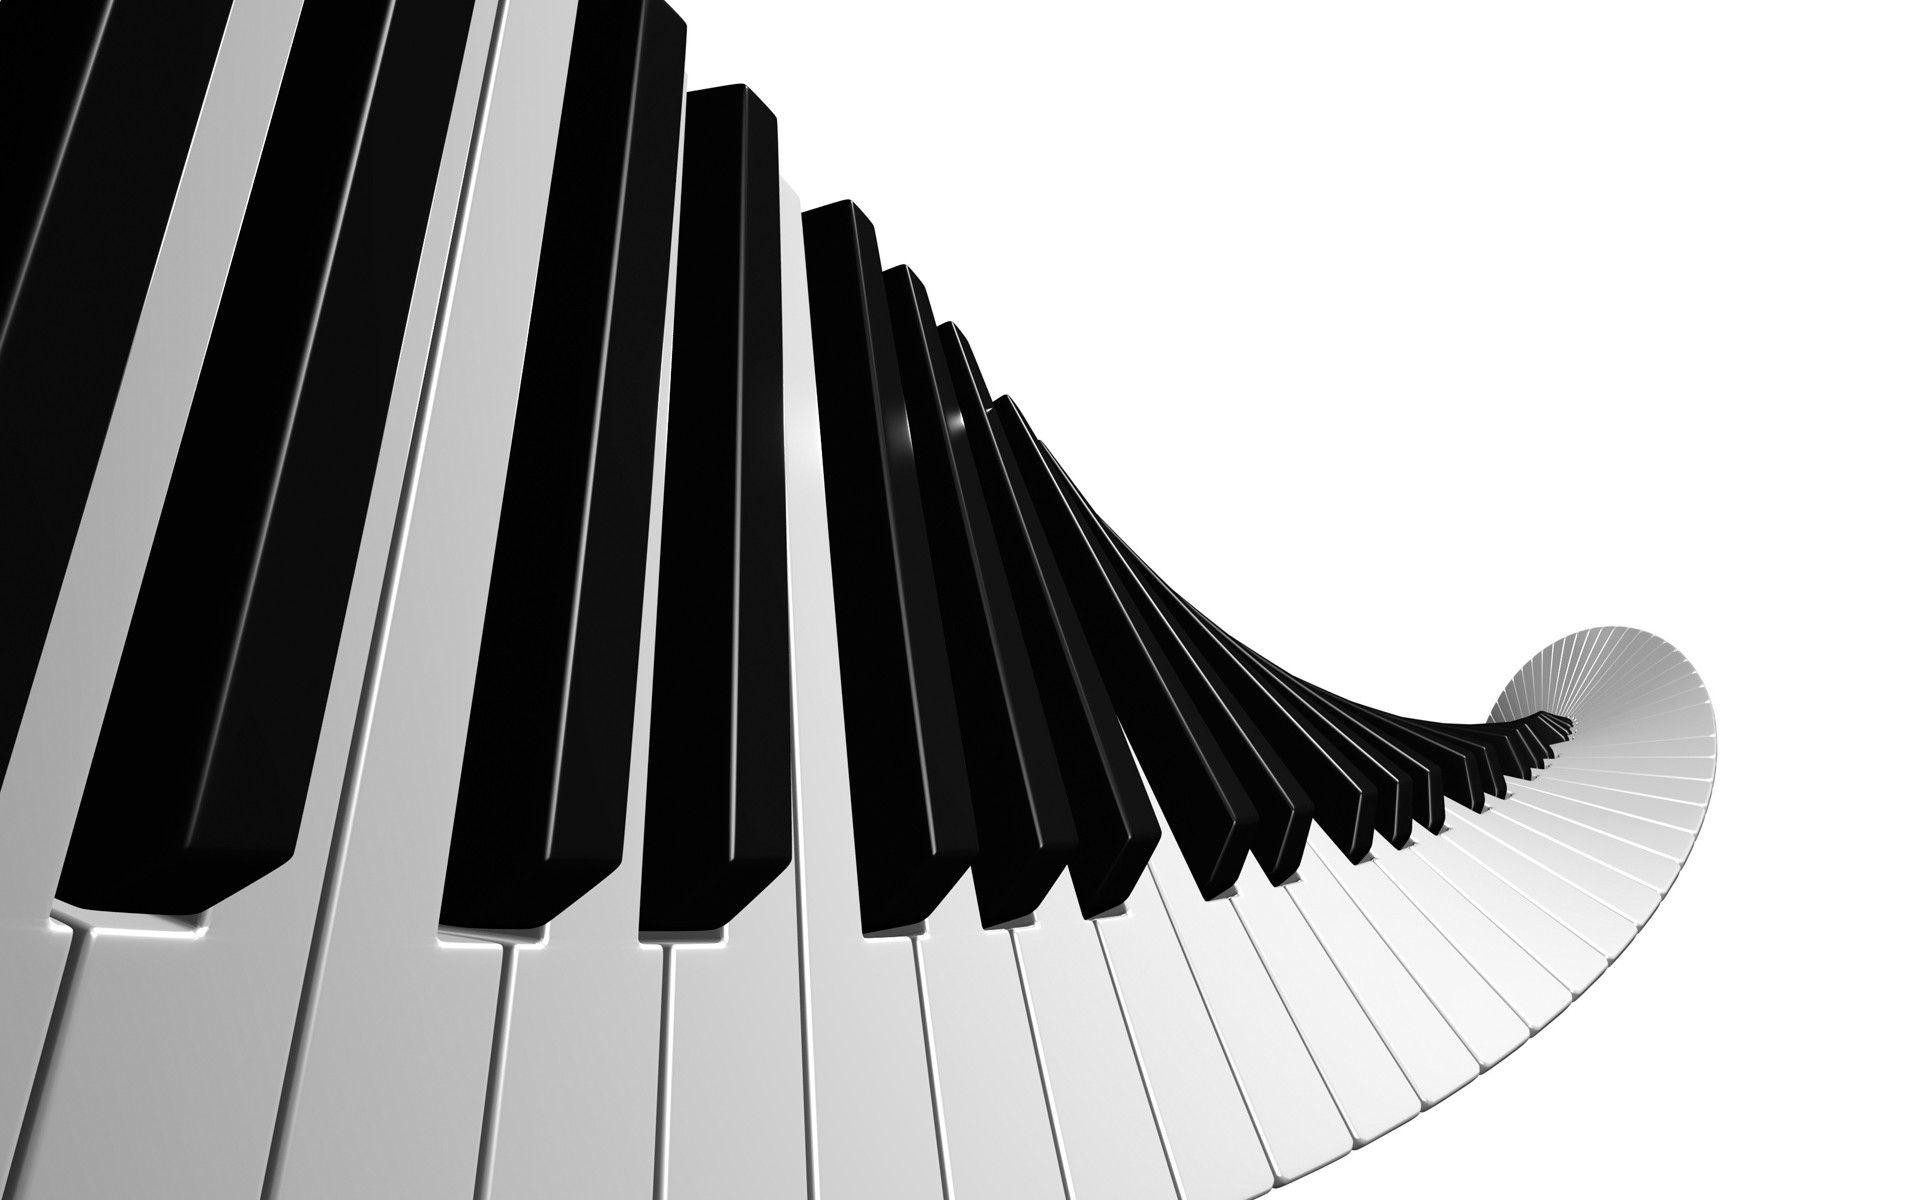 Music Wallpaper Piano 28272 Hd Wallpapers in Music – Telusers.